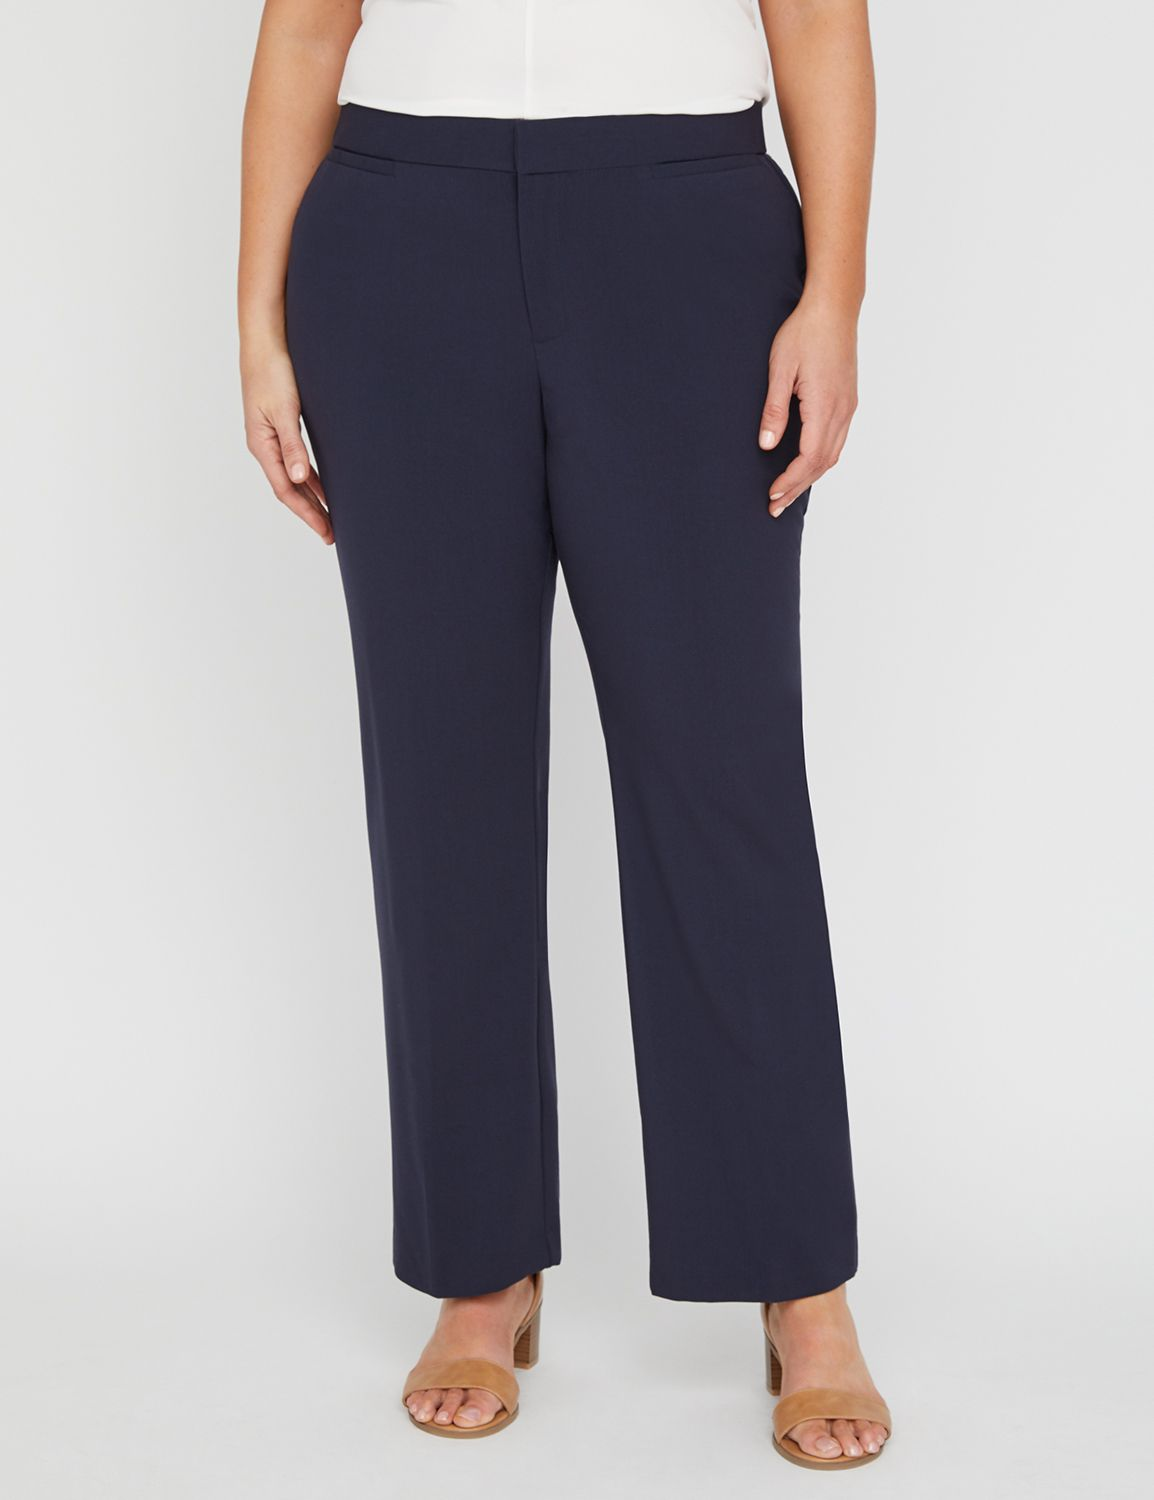 Right Fit Pant (Moderately Curvy) Right Fit Pant (Moderately Curvy) MP-300043679